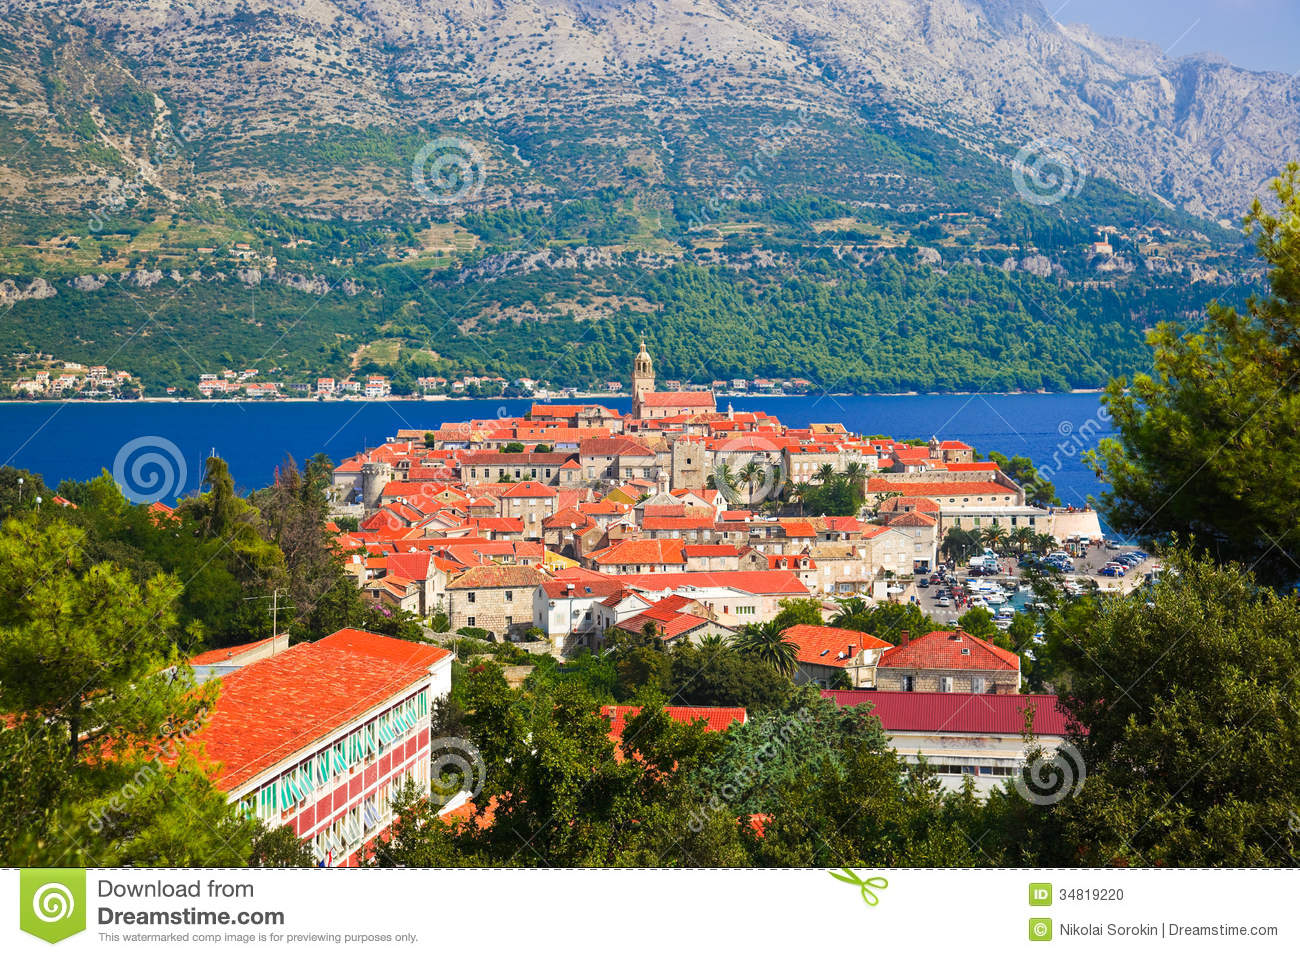 a history of the city of korcula a medieval city in croatia Korcula old city: lovely - see 1,077 traveller reviews, 1,085 candid photos, and great deals for korcula island, croatia, at tripadvisor.